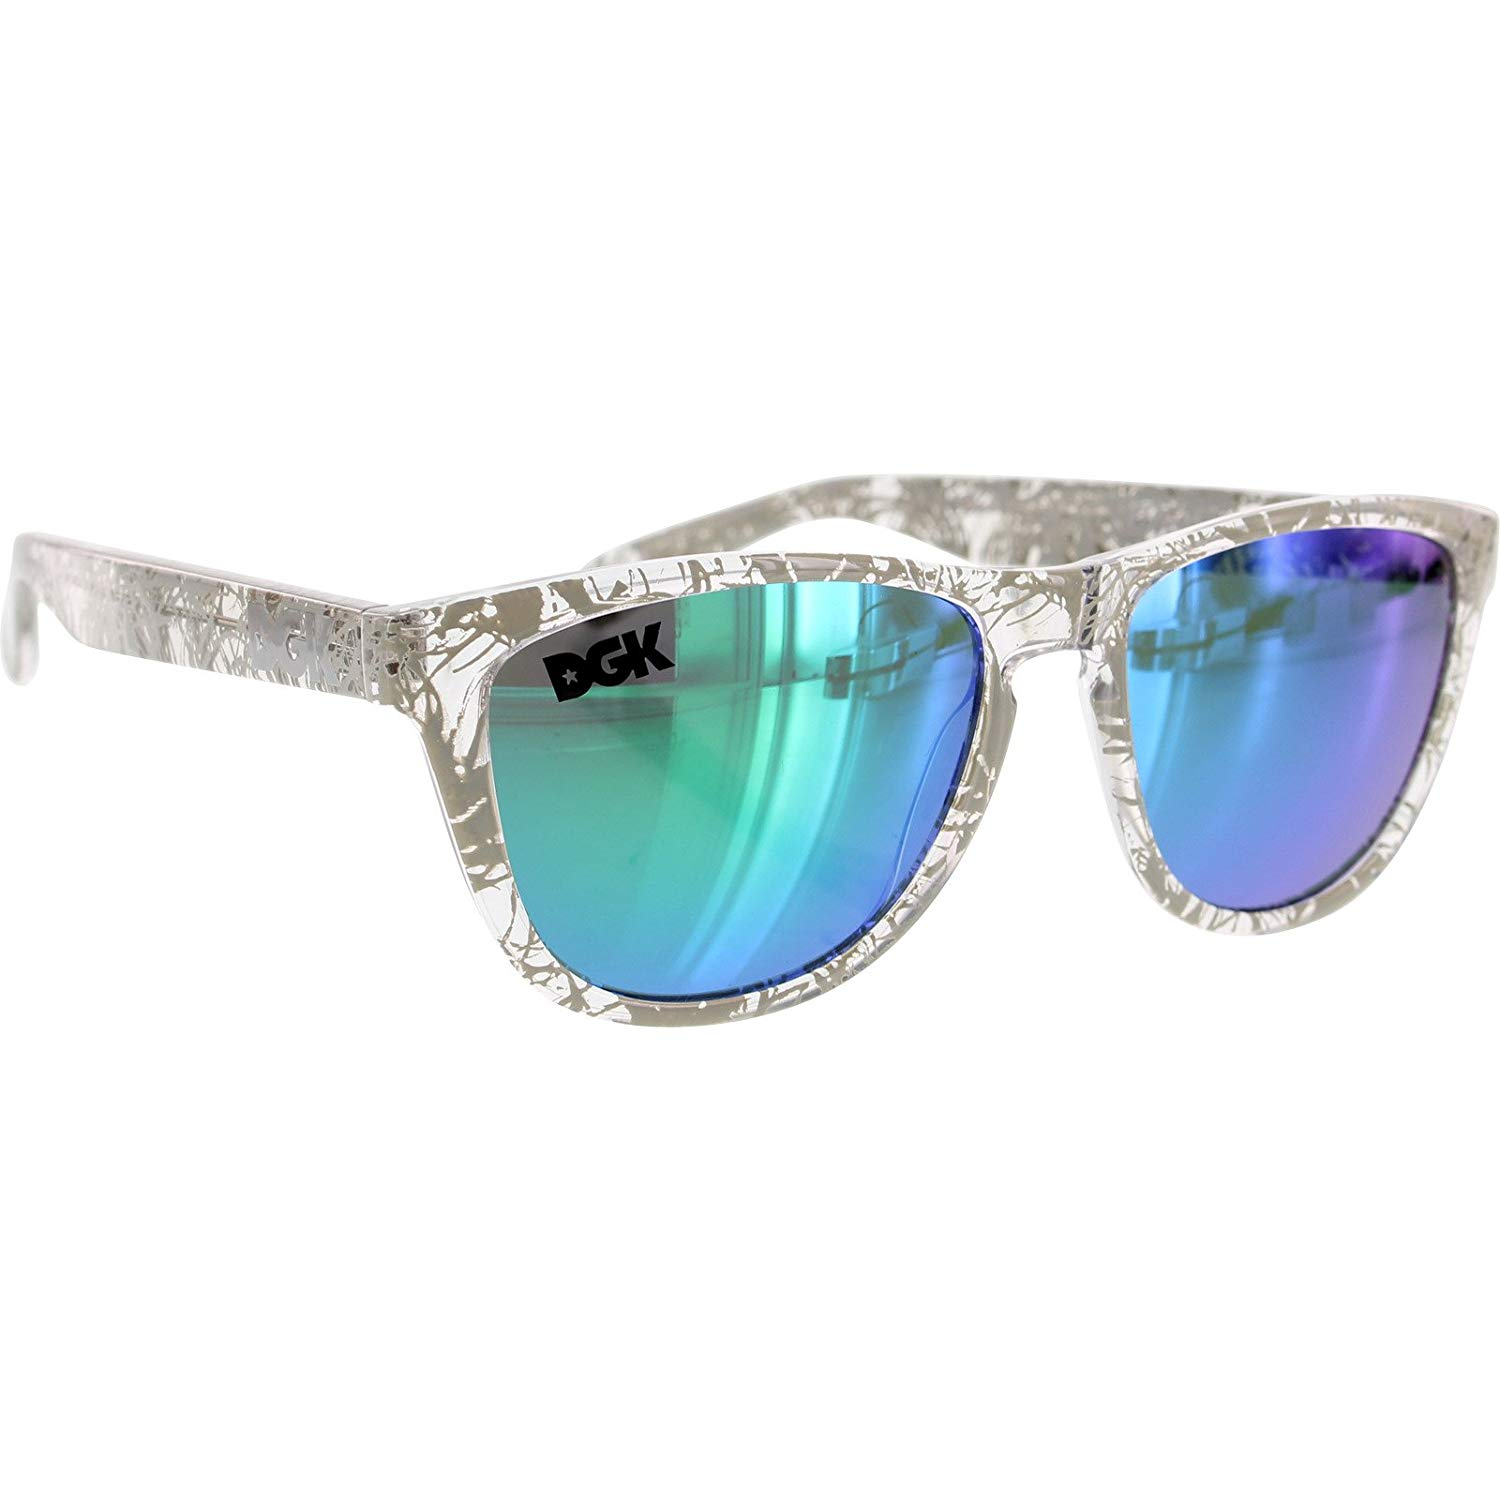 19e0981dff534 DGK Skateboards Vacation Shades Humbolt Sunglasses - with Mirror